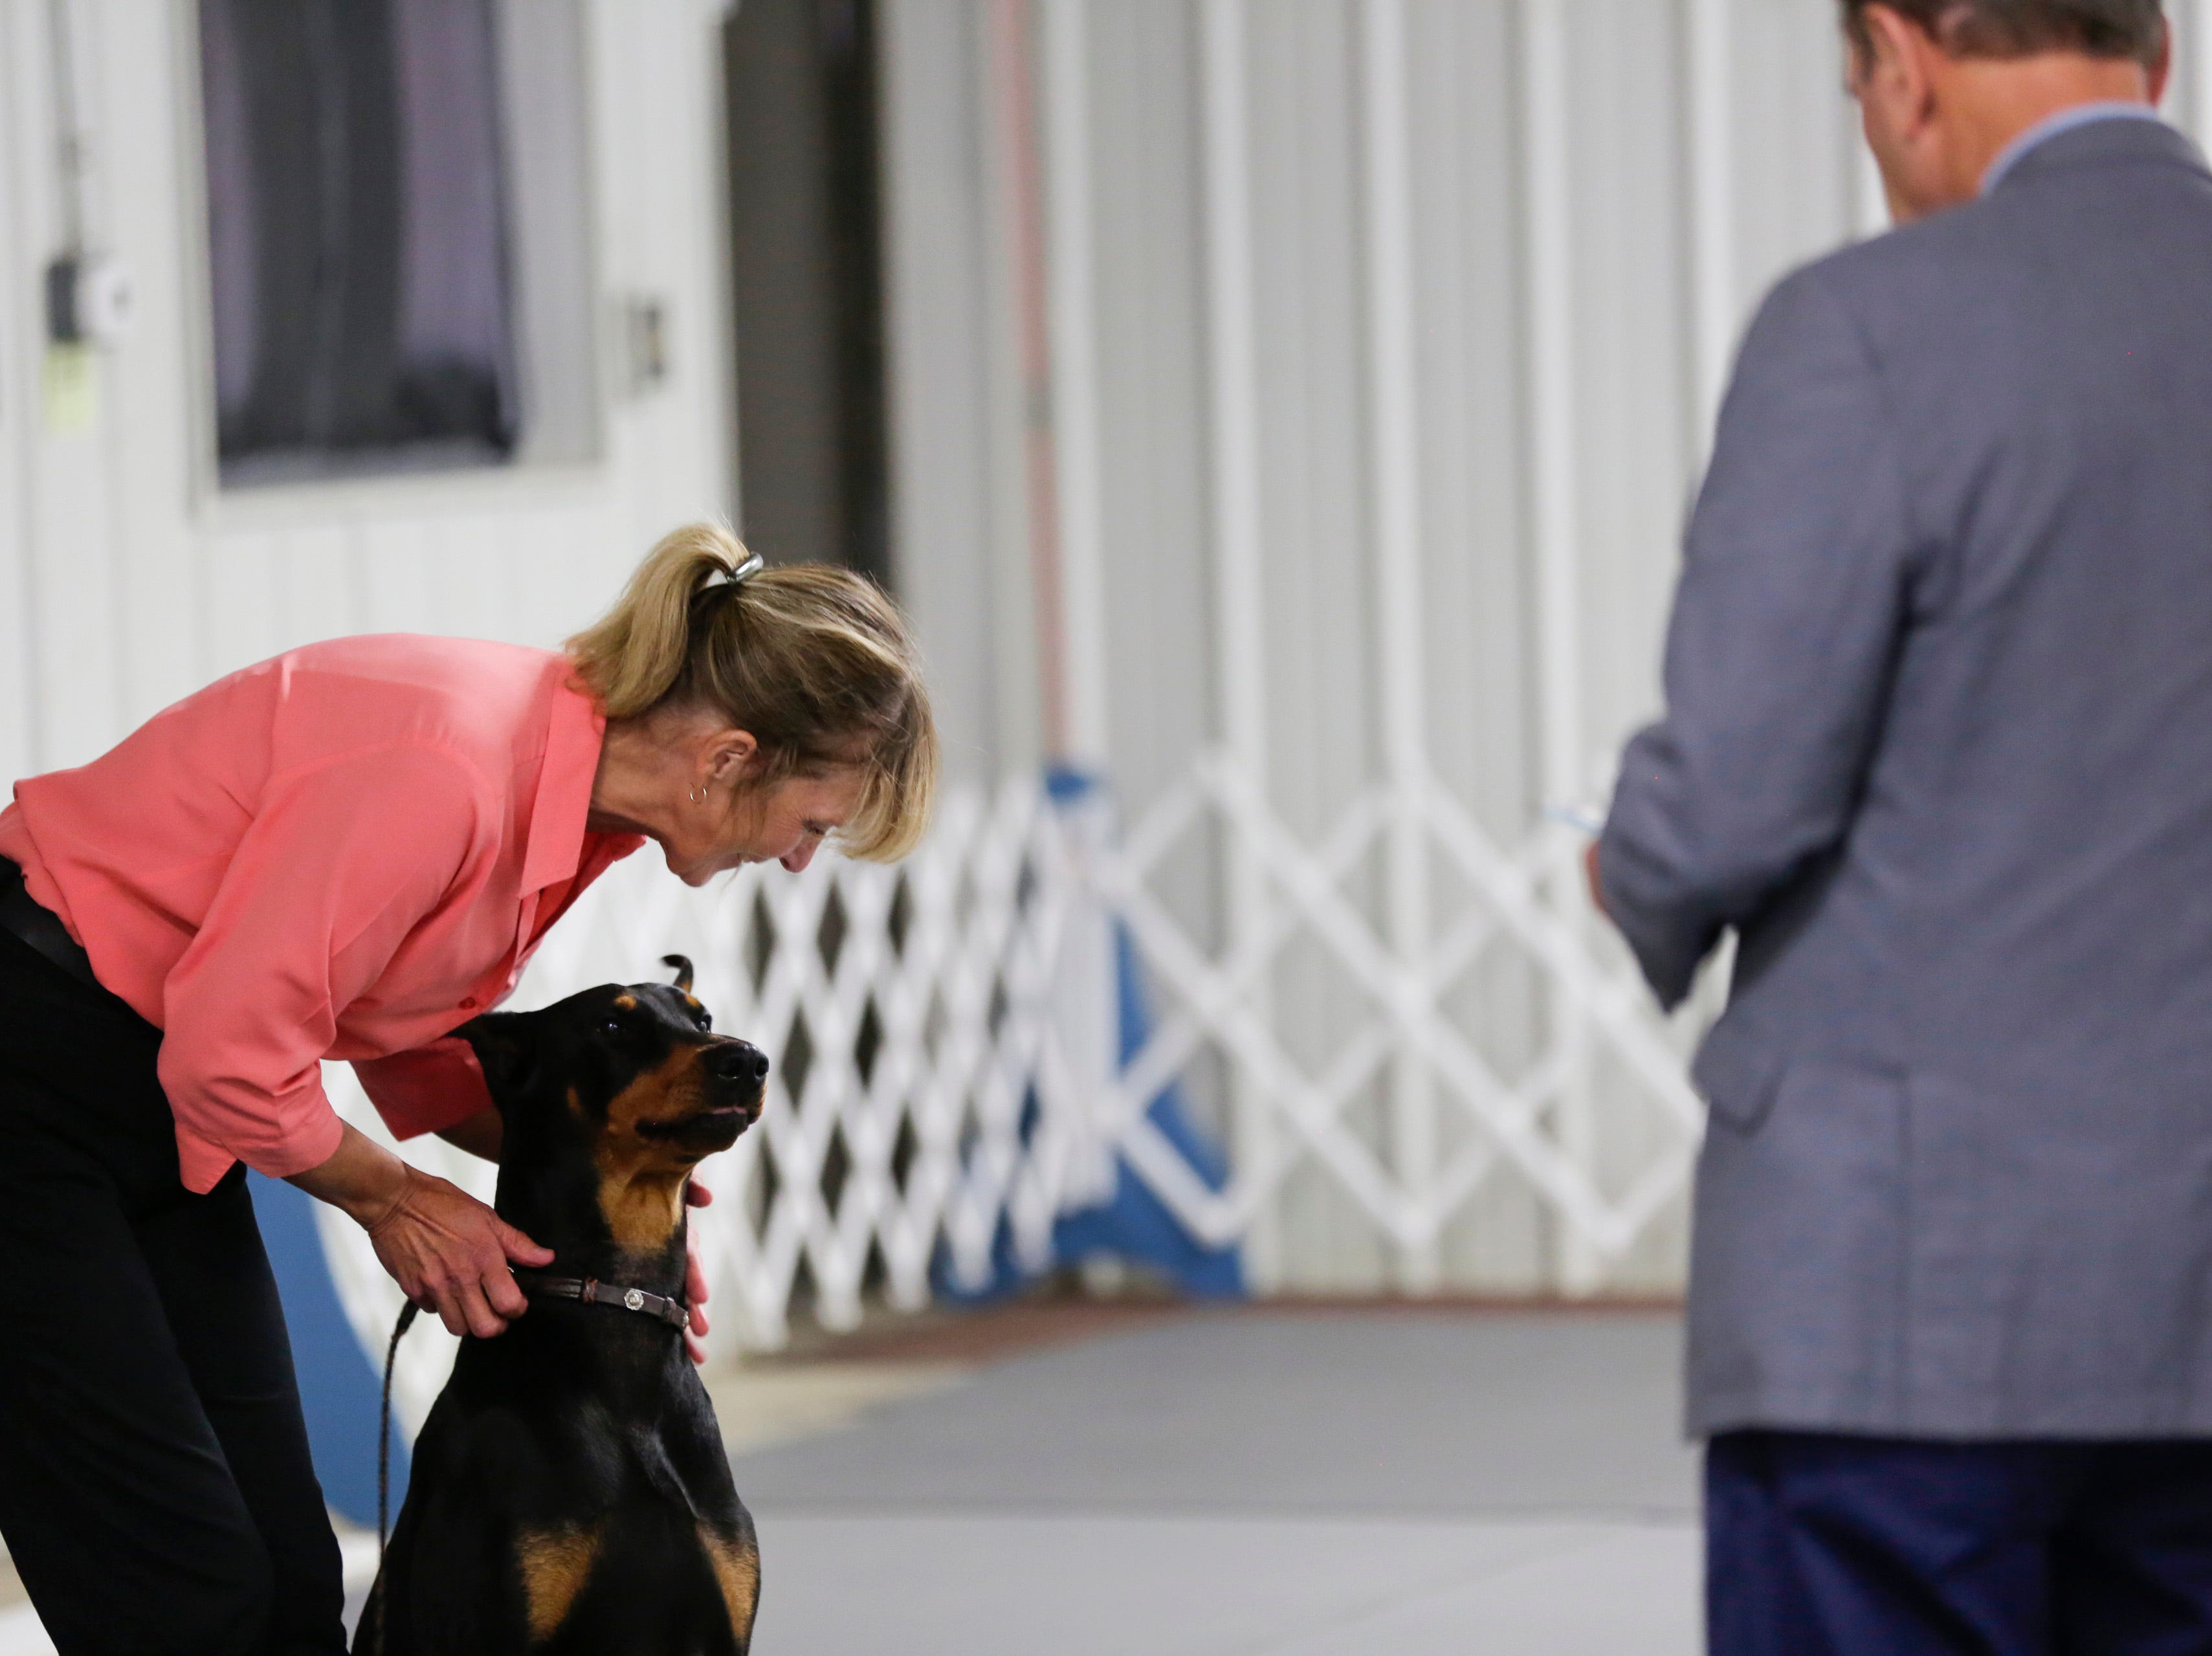 Cindy Bohnert competes with her Doberman pinscher Trek in the novice obedience class during the Marshfield Area Kennel Club's All-Breed Dog Show, Obedience Trials and Rally Trials at the Central Wisconsin Fairgrounds in Marshfield Saturday, August 18, 2018.